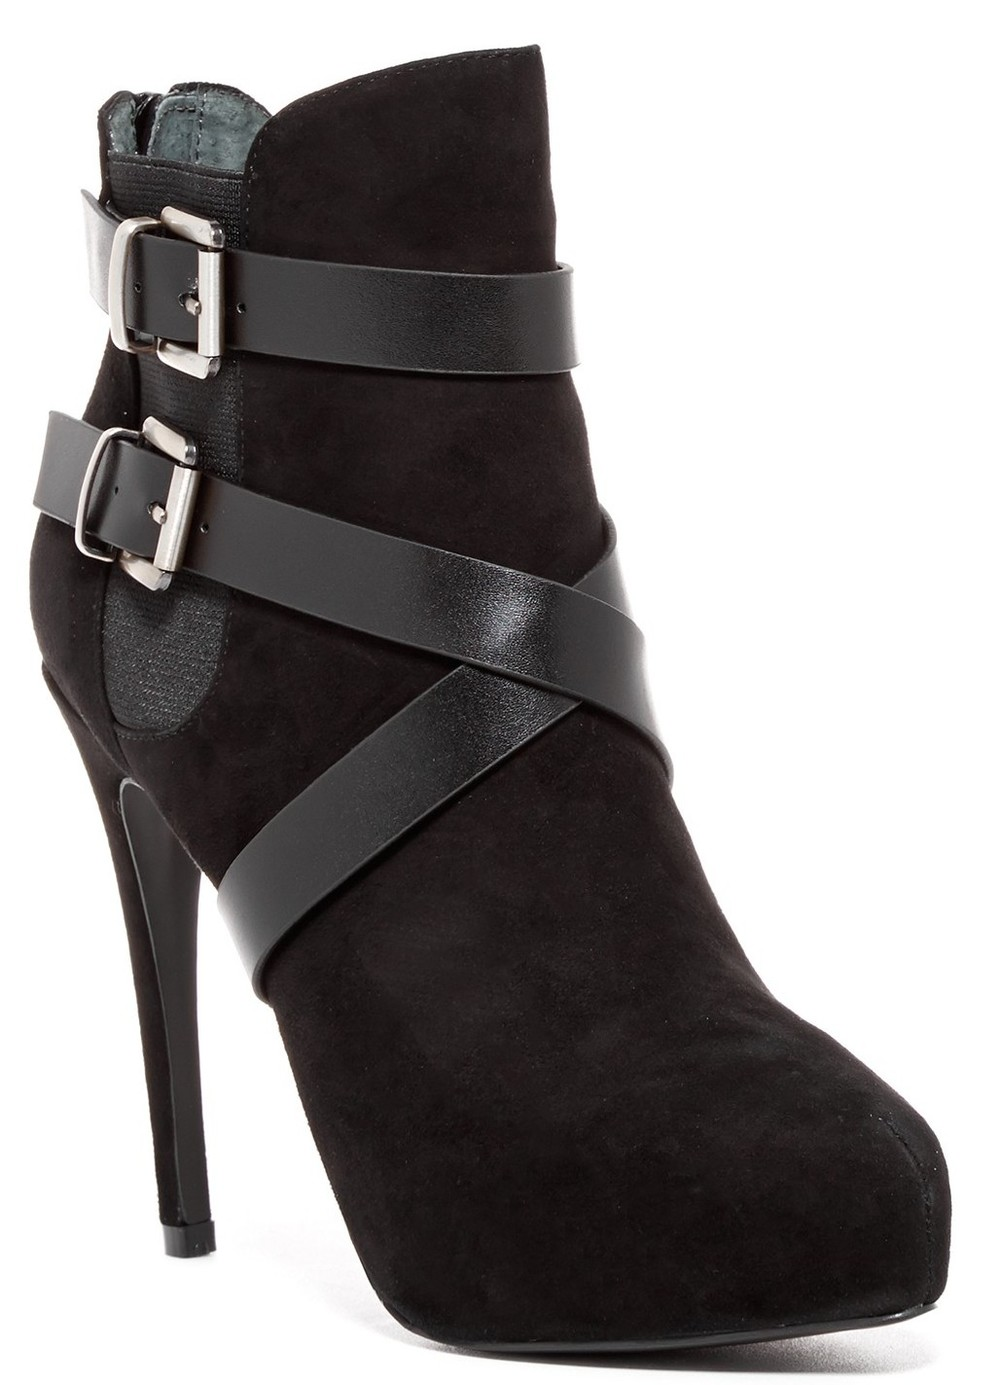 Charles by Charles David Fame Platform Bootie in Black Suede, $90 at NordstromRack.com.